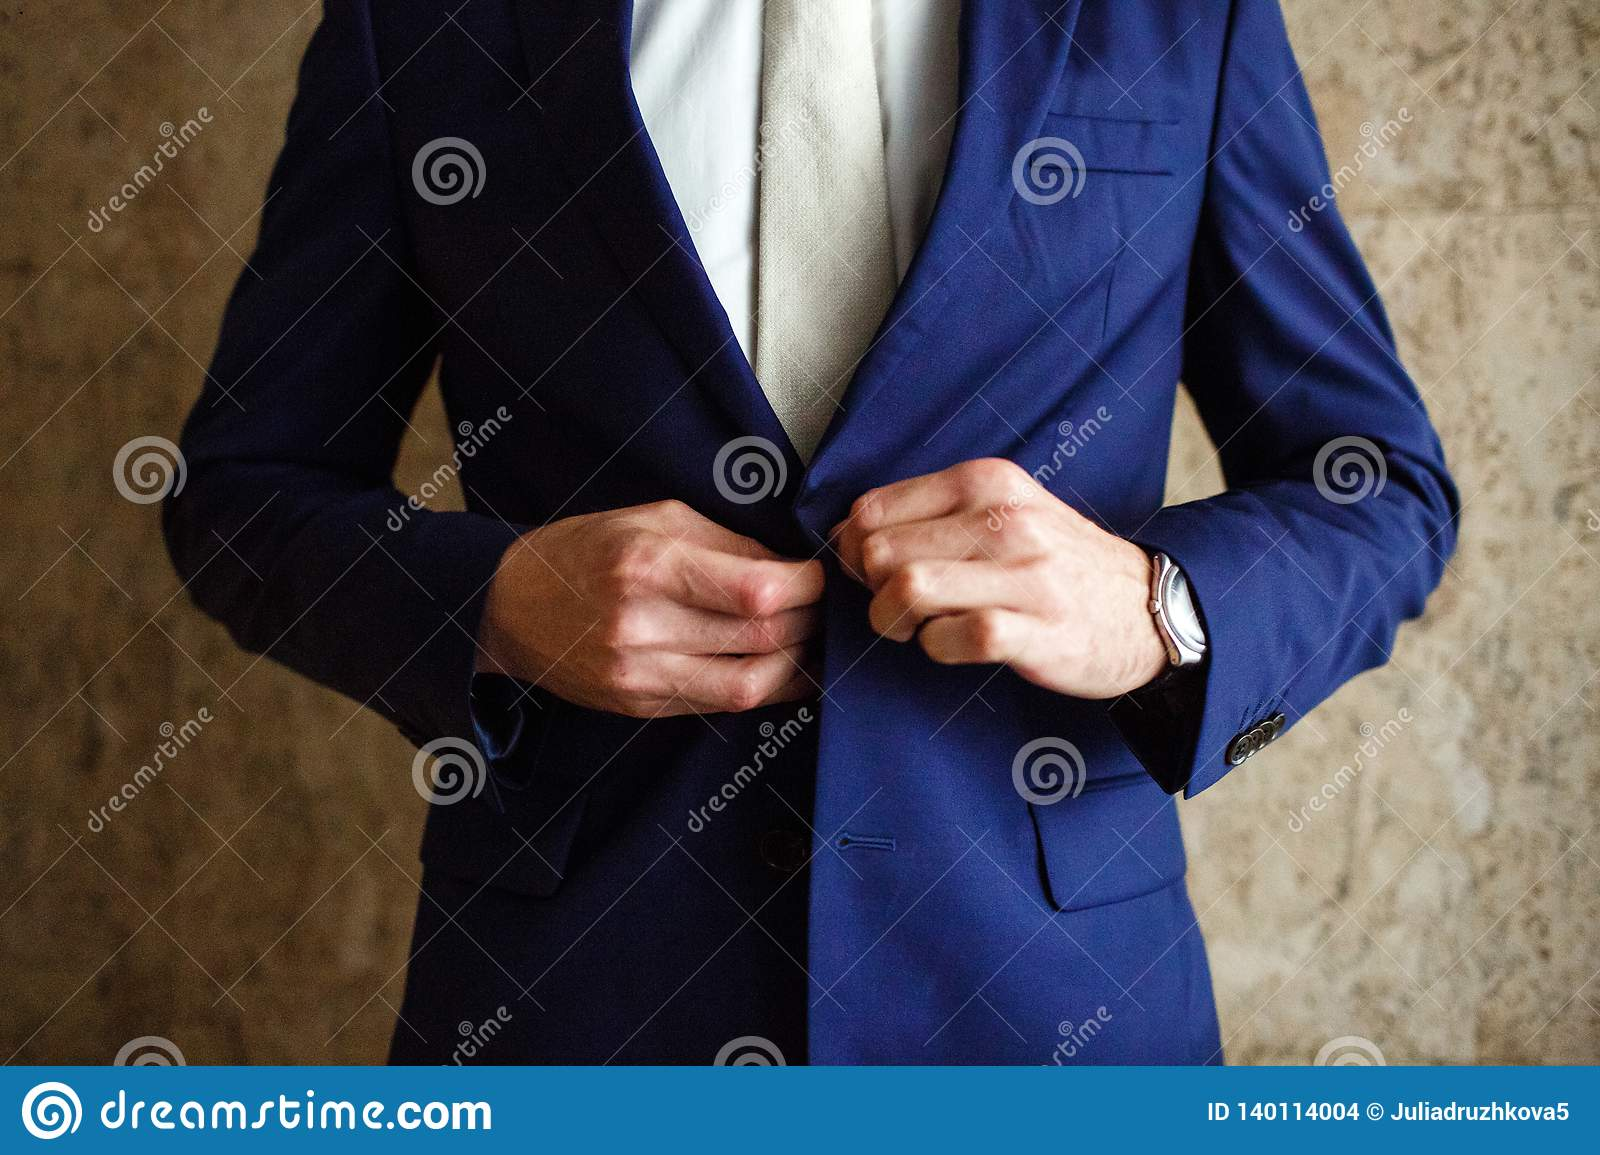 A man fastens buttons blue jacket on his hand his watch